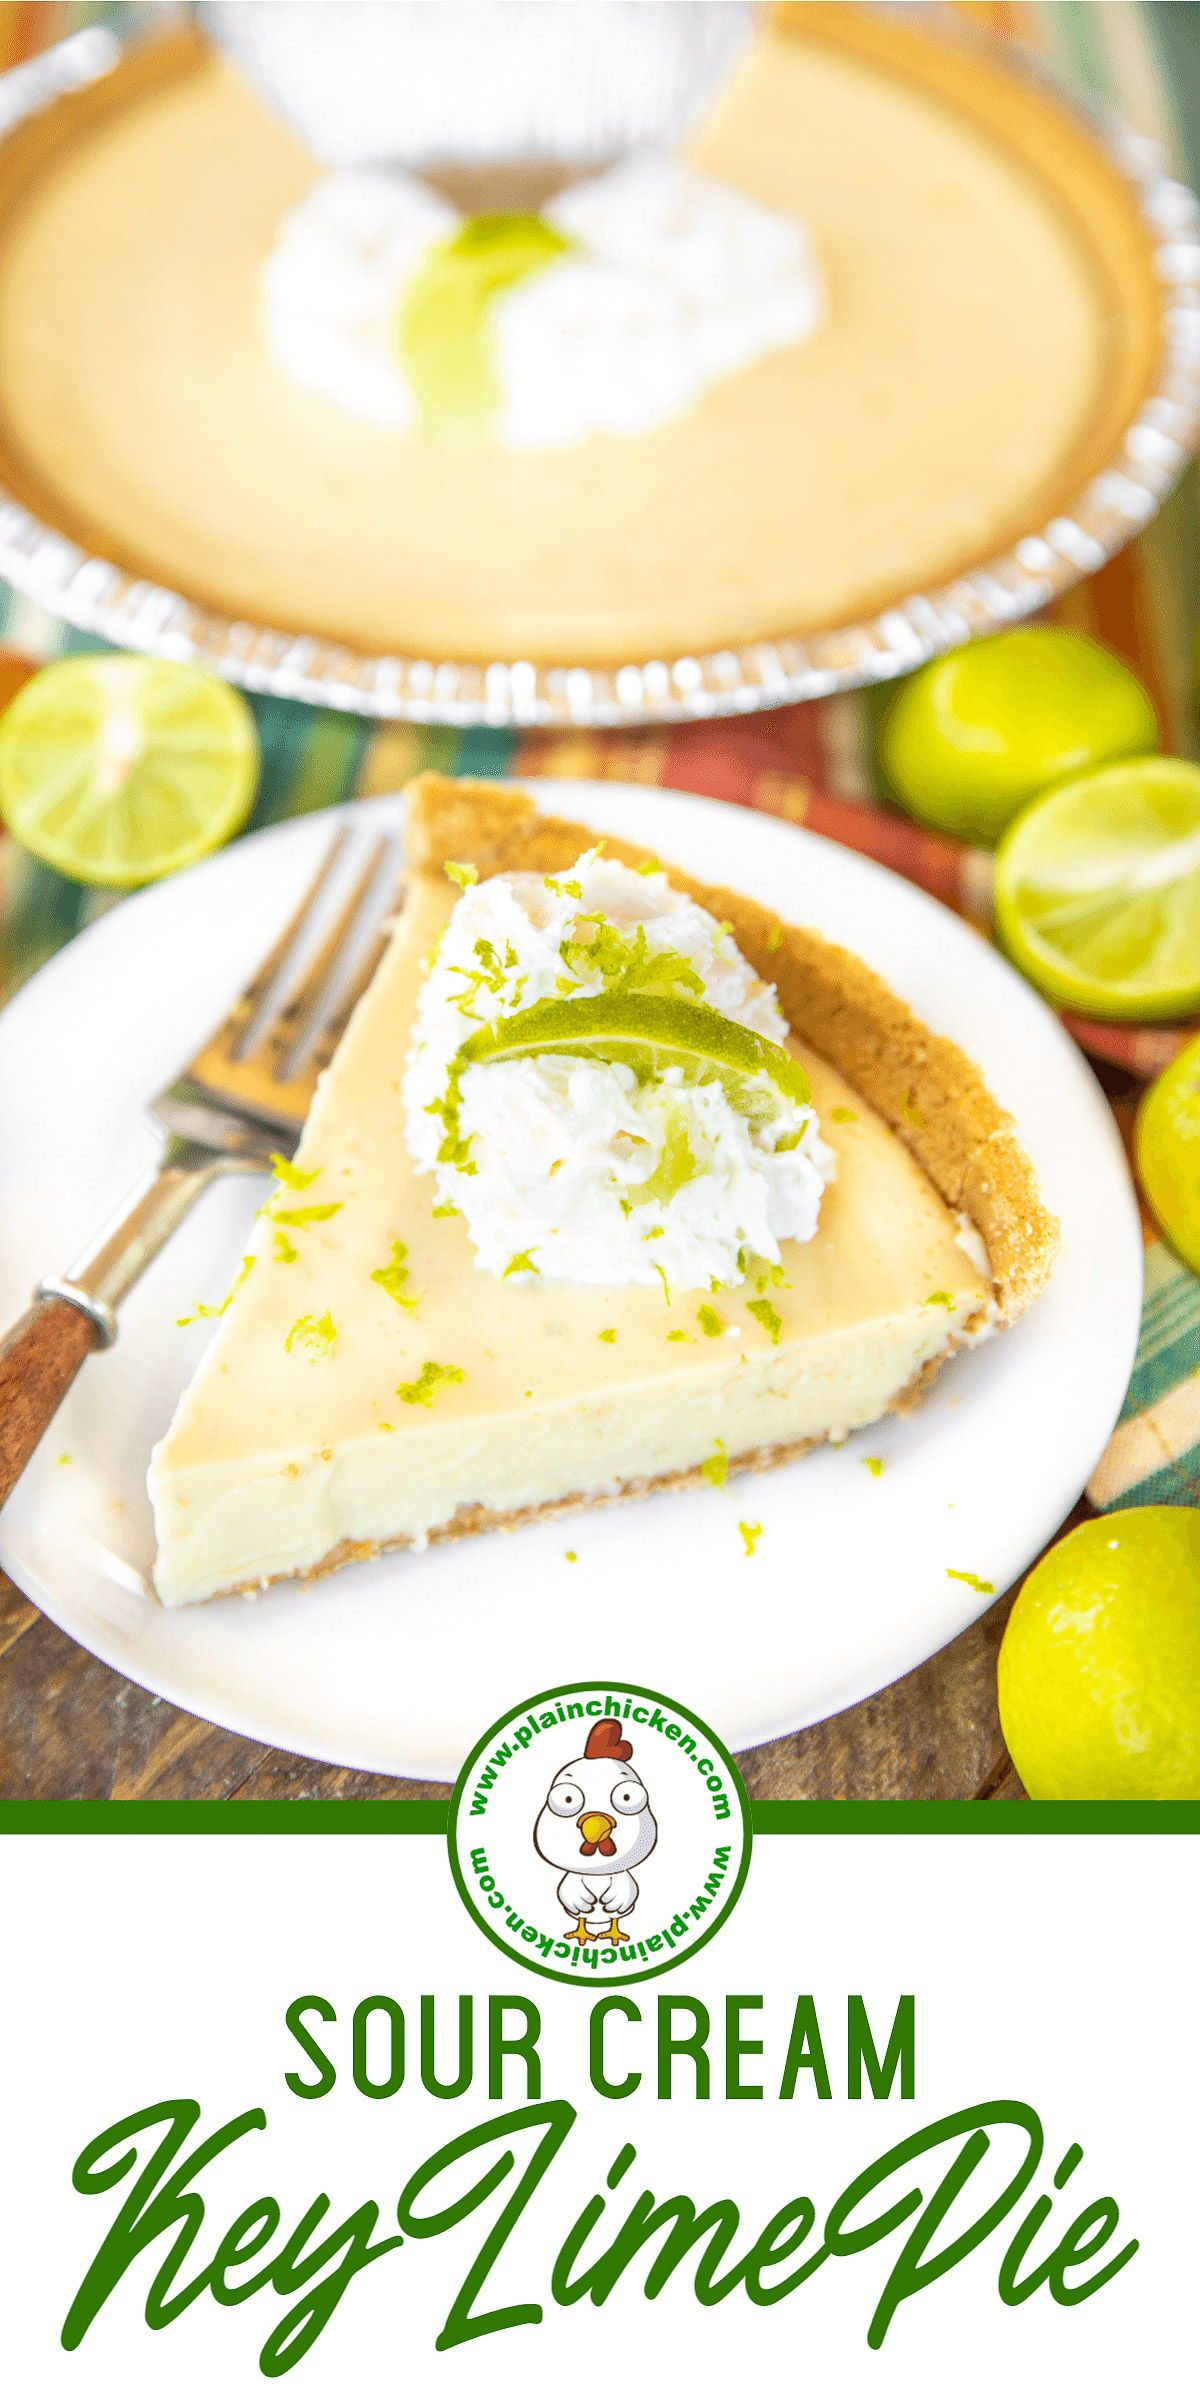 Sour Cream Key Lime Pie In 2020 Lime Recipes Delicious Pies Yummy Pie Recipes